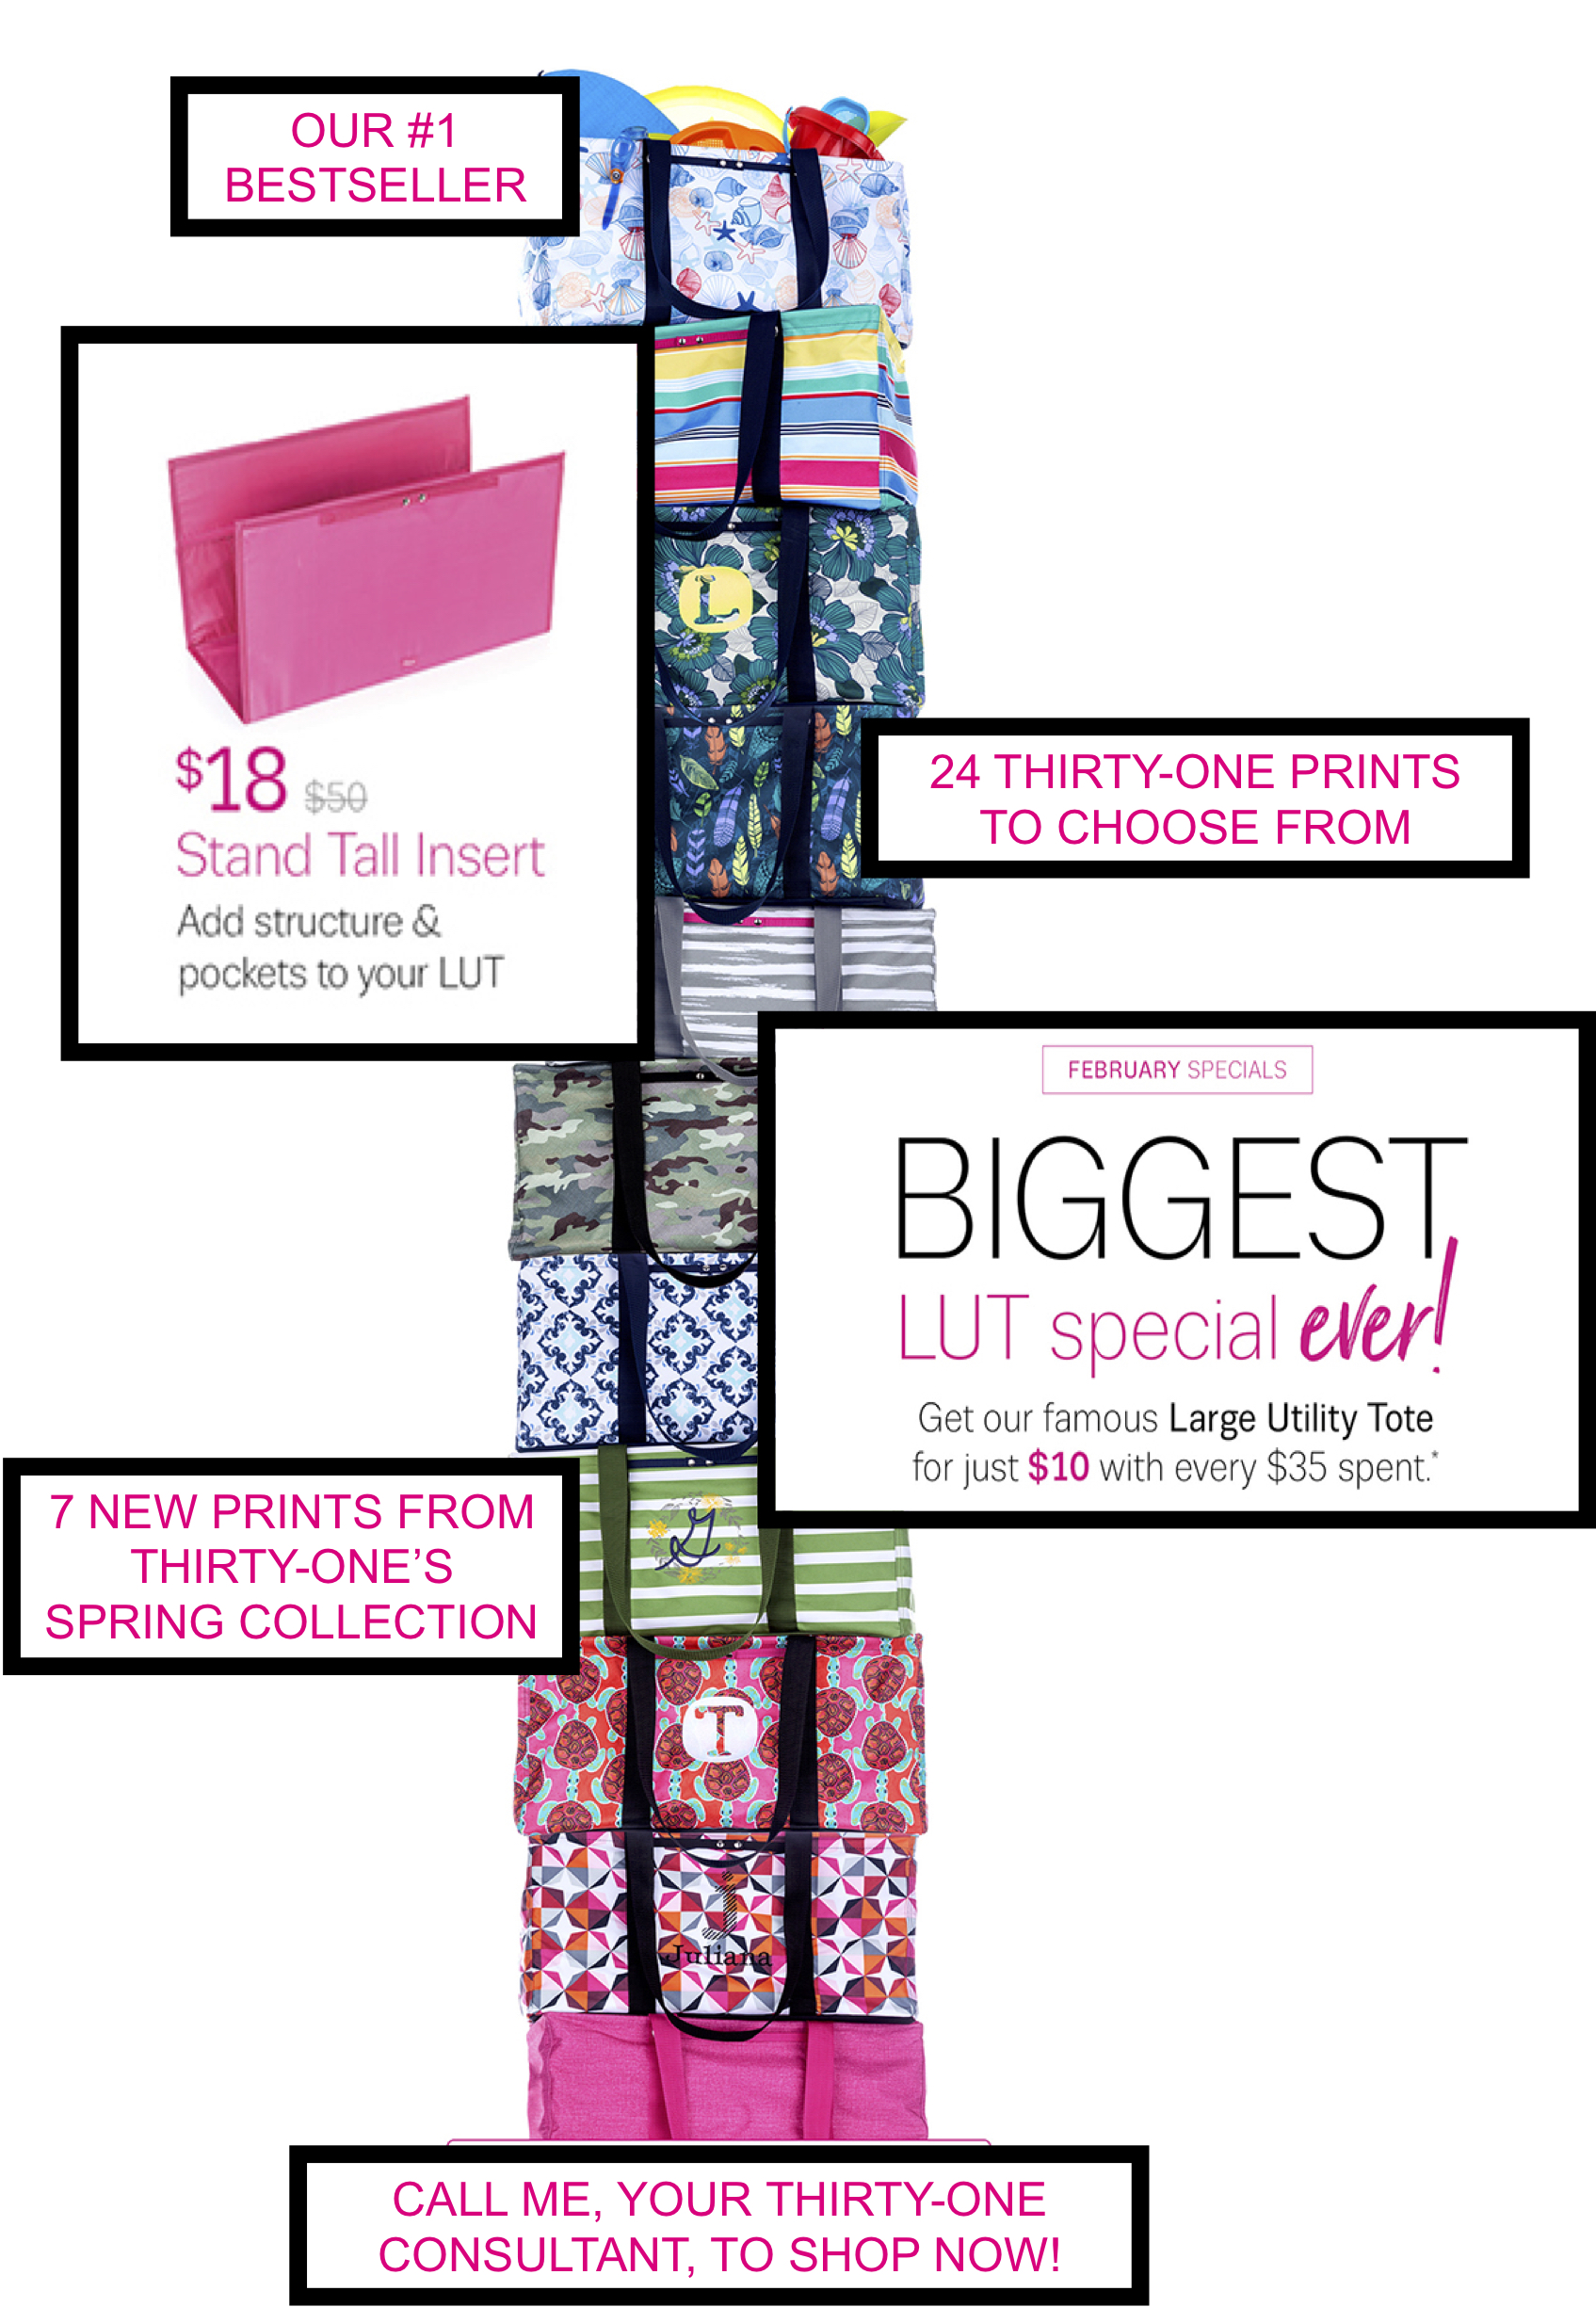 Thirty-One Gifts - #1 Bestseller